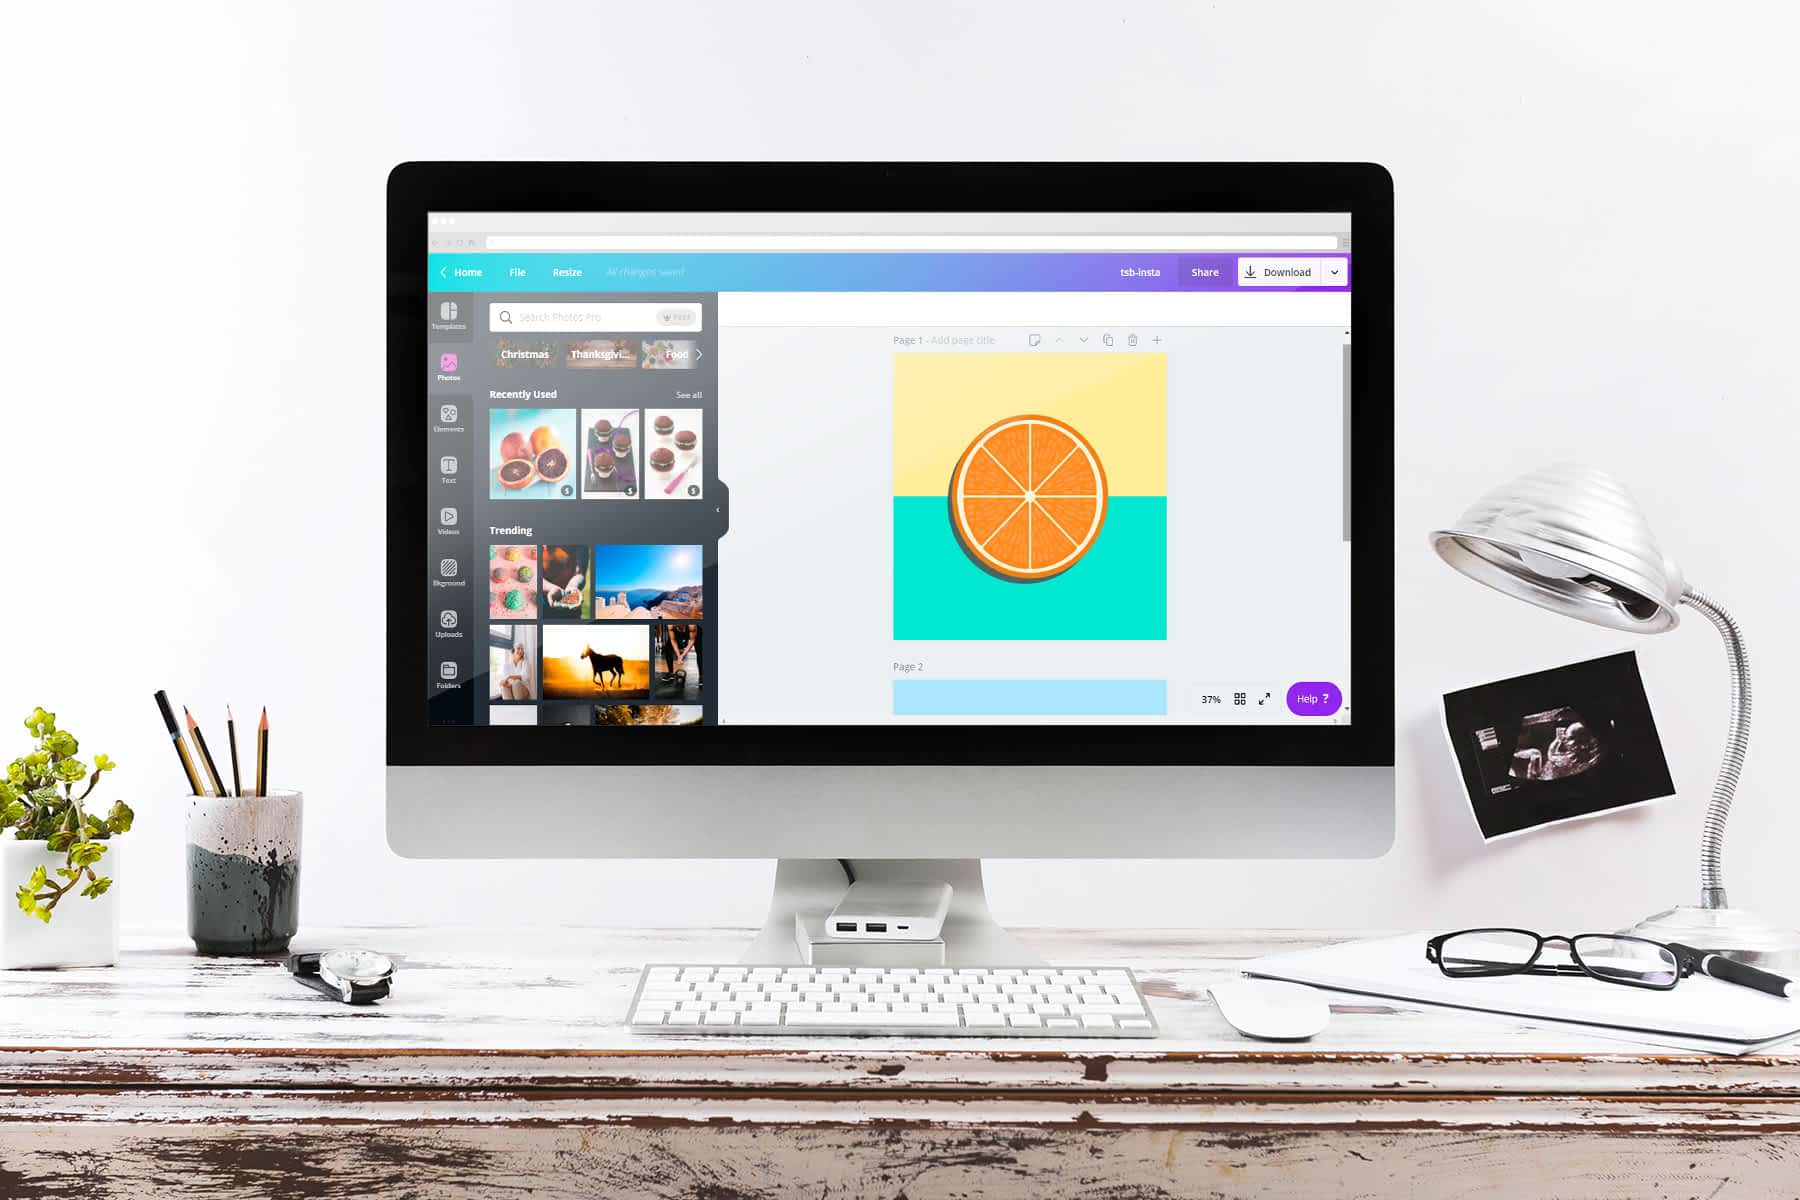 A mockup of Canva -- an internet-based graphic design software.